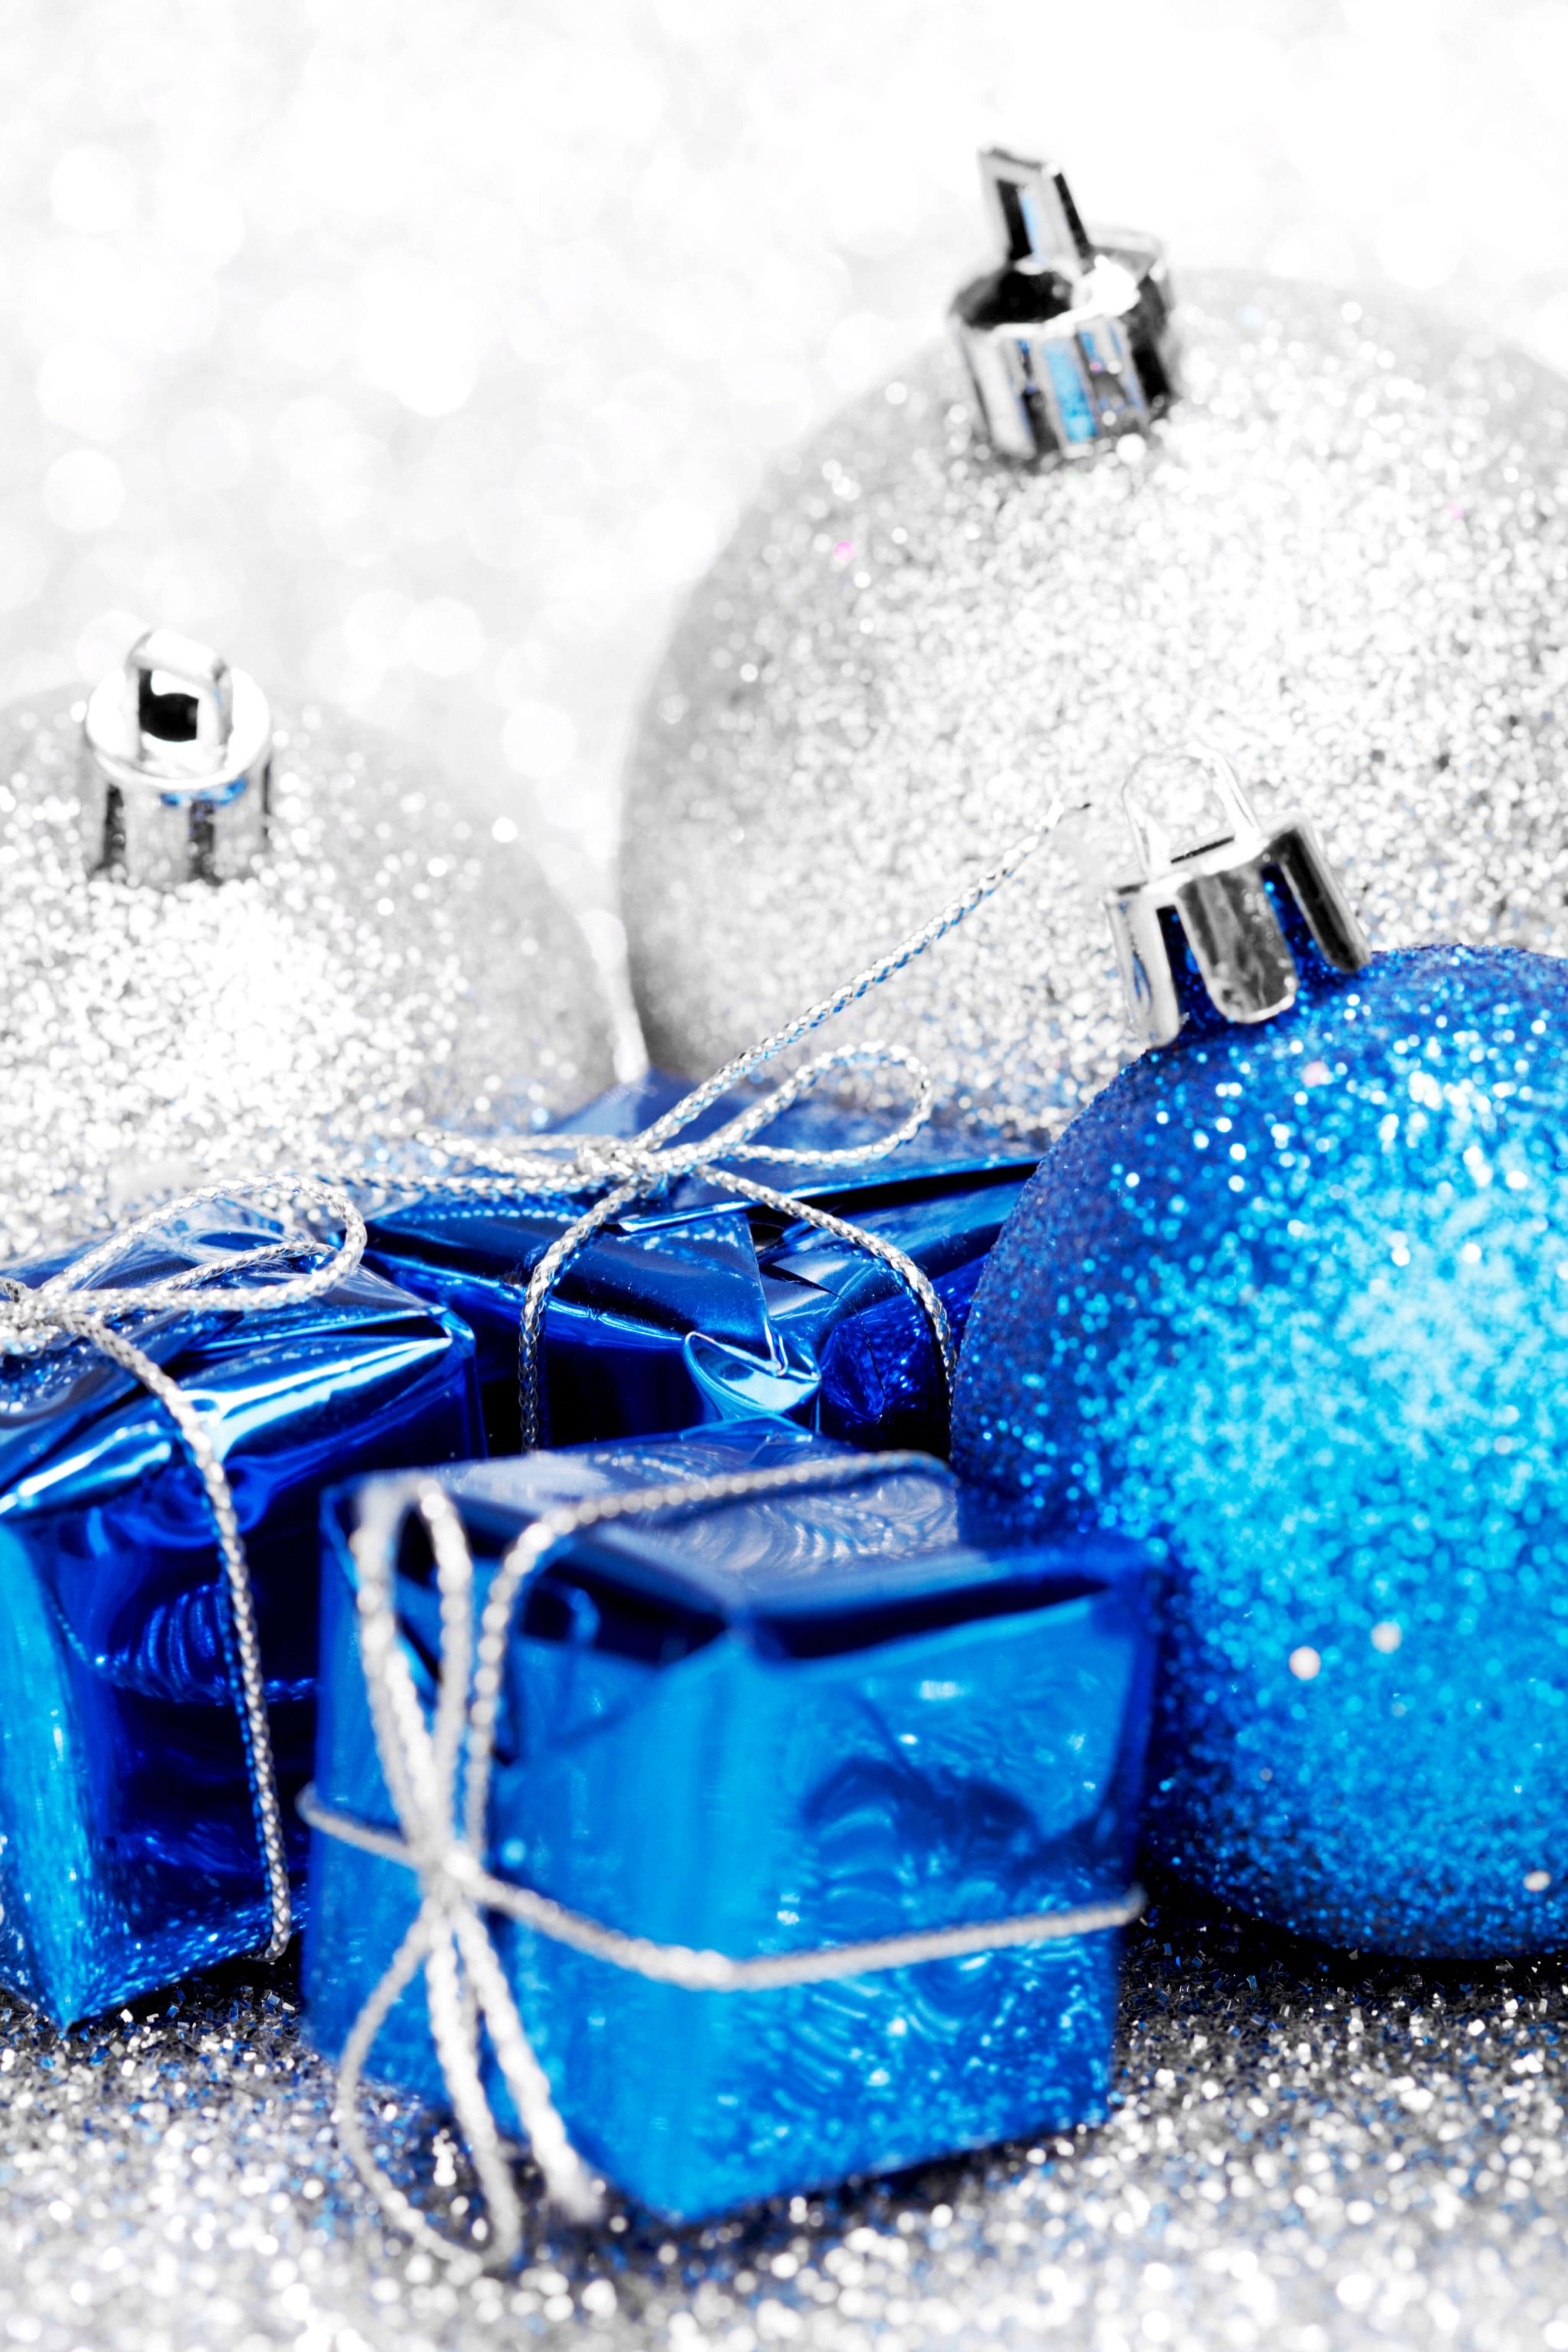 a little alone time - blue and silver Christmas baubles